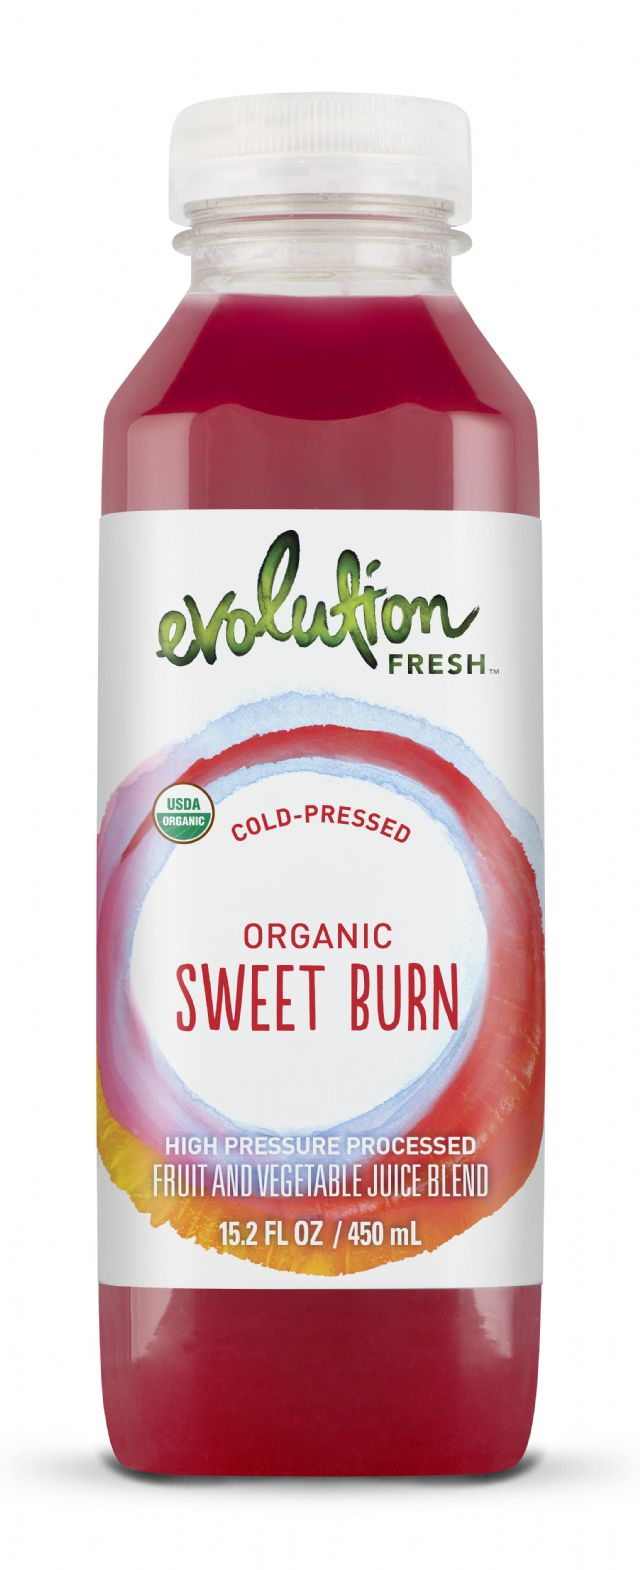 Evolution Fresh: OrganicSweetBurn copy